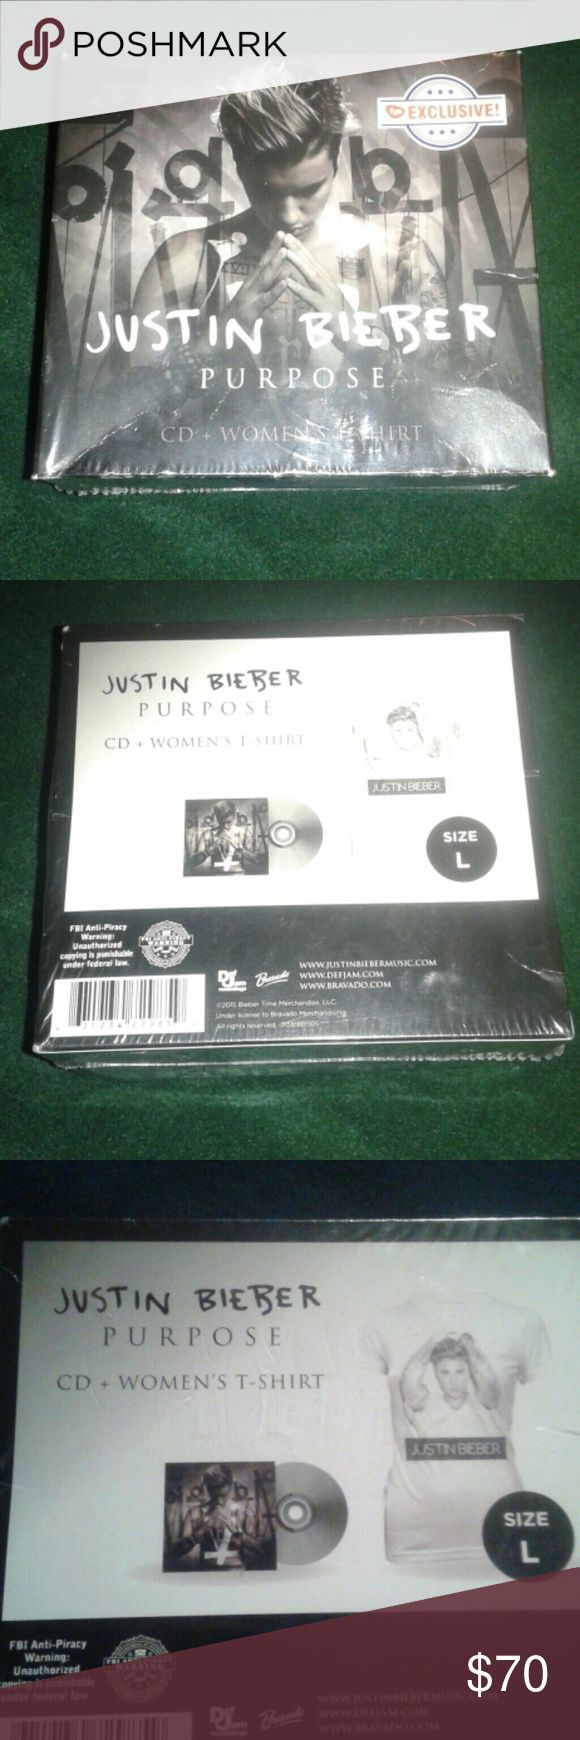 Justin Bieber Purpose CD + Shirt Combo Box Set New and never opened combo box set. It's a F.Y.E. Exclusive. Women's shirt size is a L. That what the box says. justin bieber Tops Tees - Short Sleeve